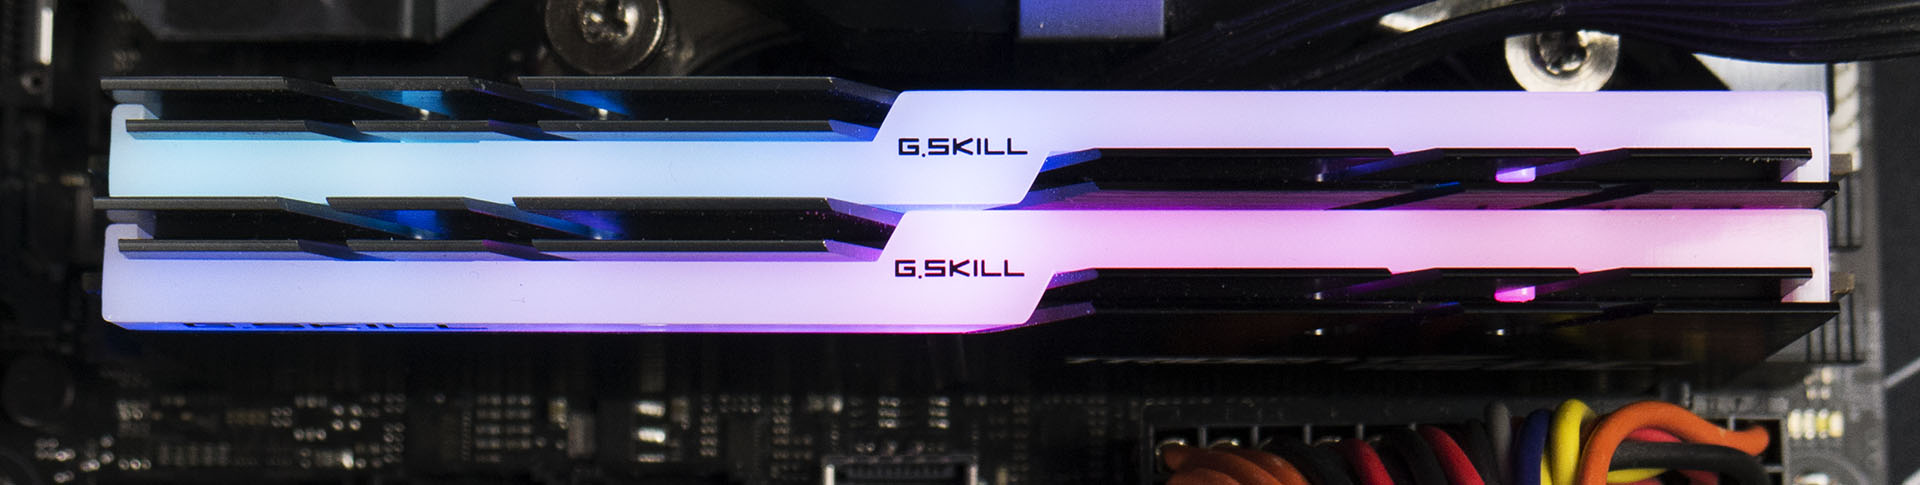 G Skill TridentZ RGB DC Overview - Double Height DDR4: 32GB